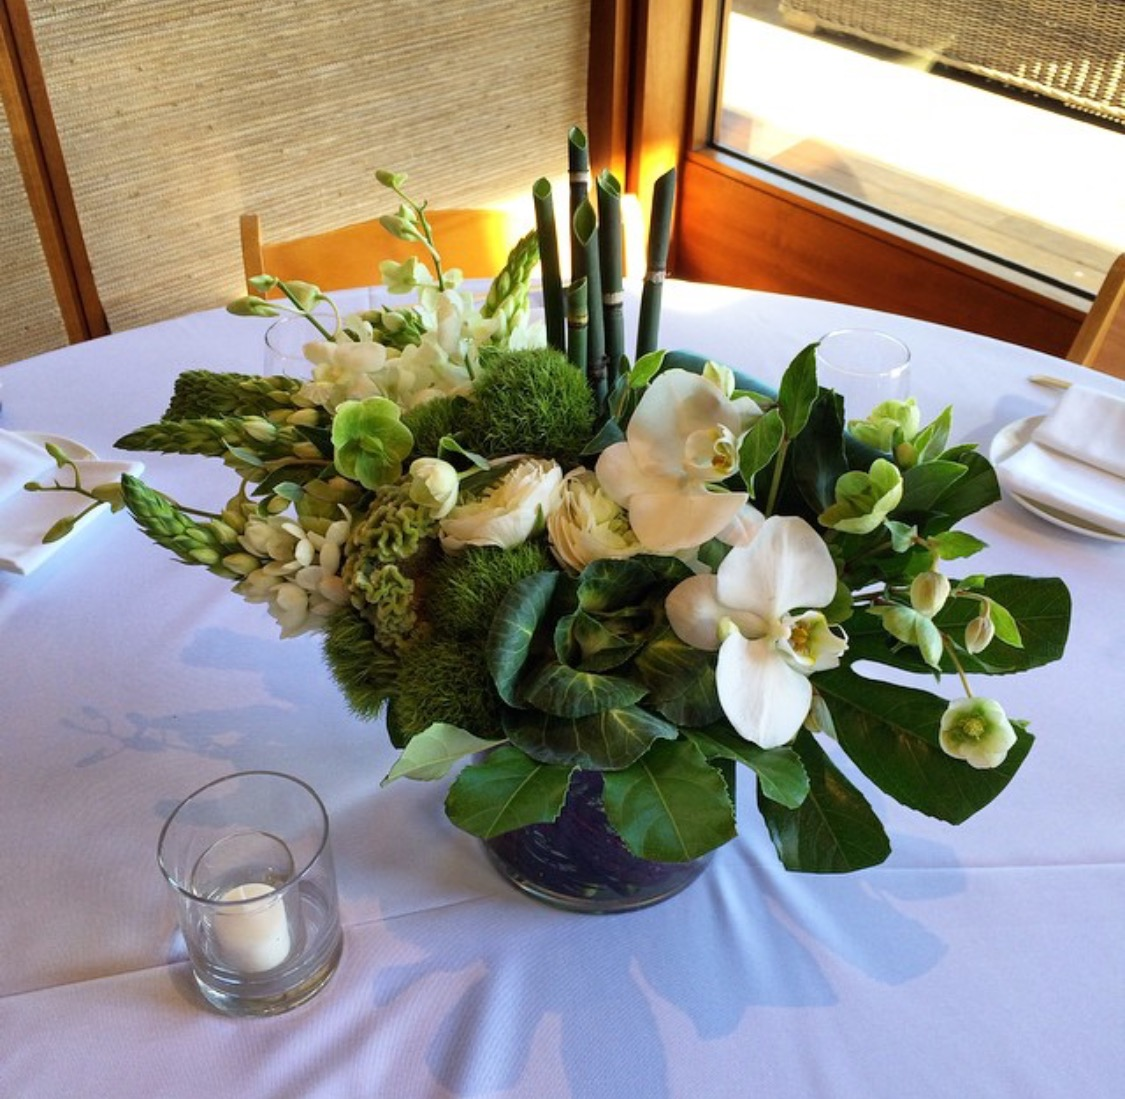 27. Modern White and Green Centerpiece